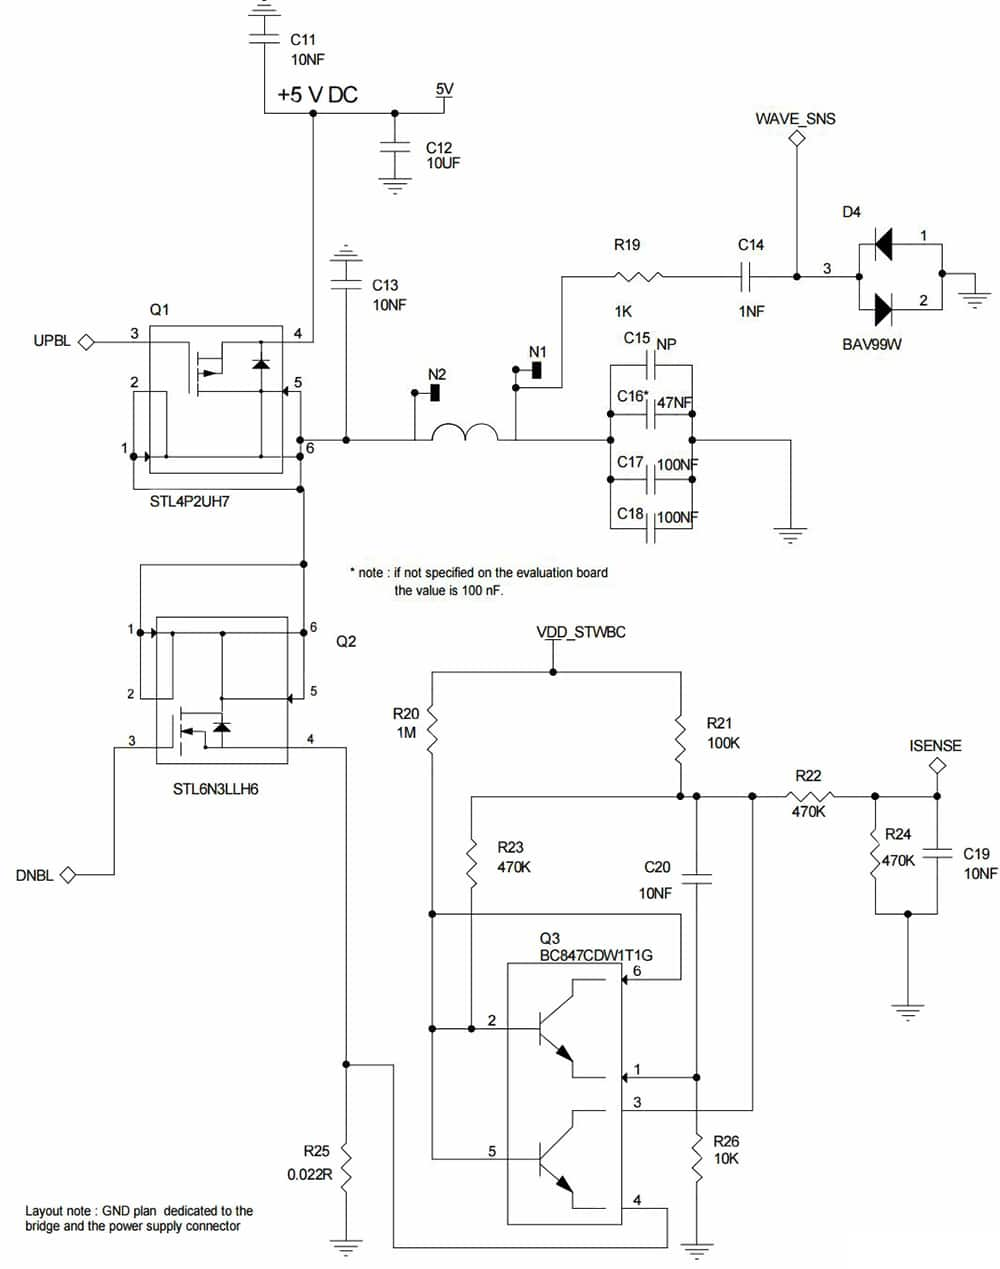 medium resolution of diagram of half bridge topology for the stmicroelectronics stwbc wa transmitter click for